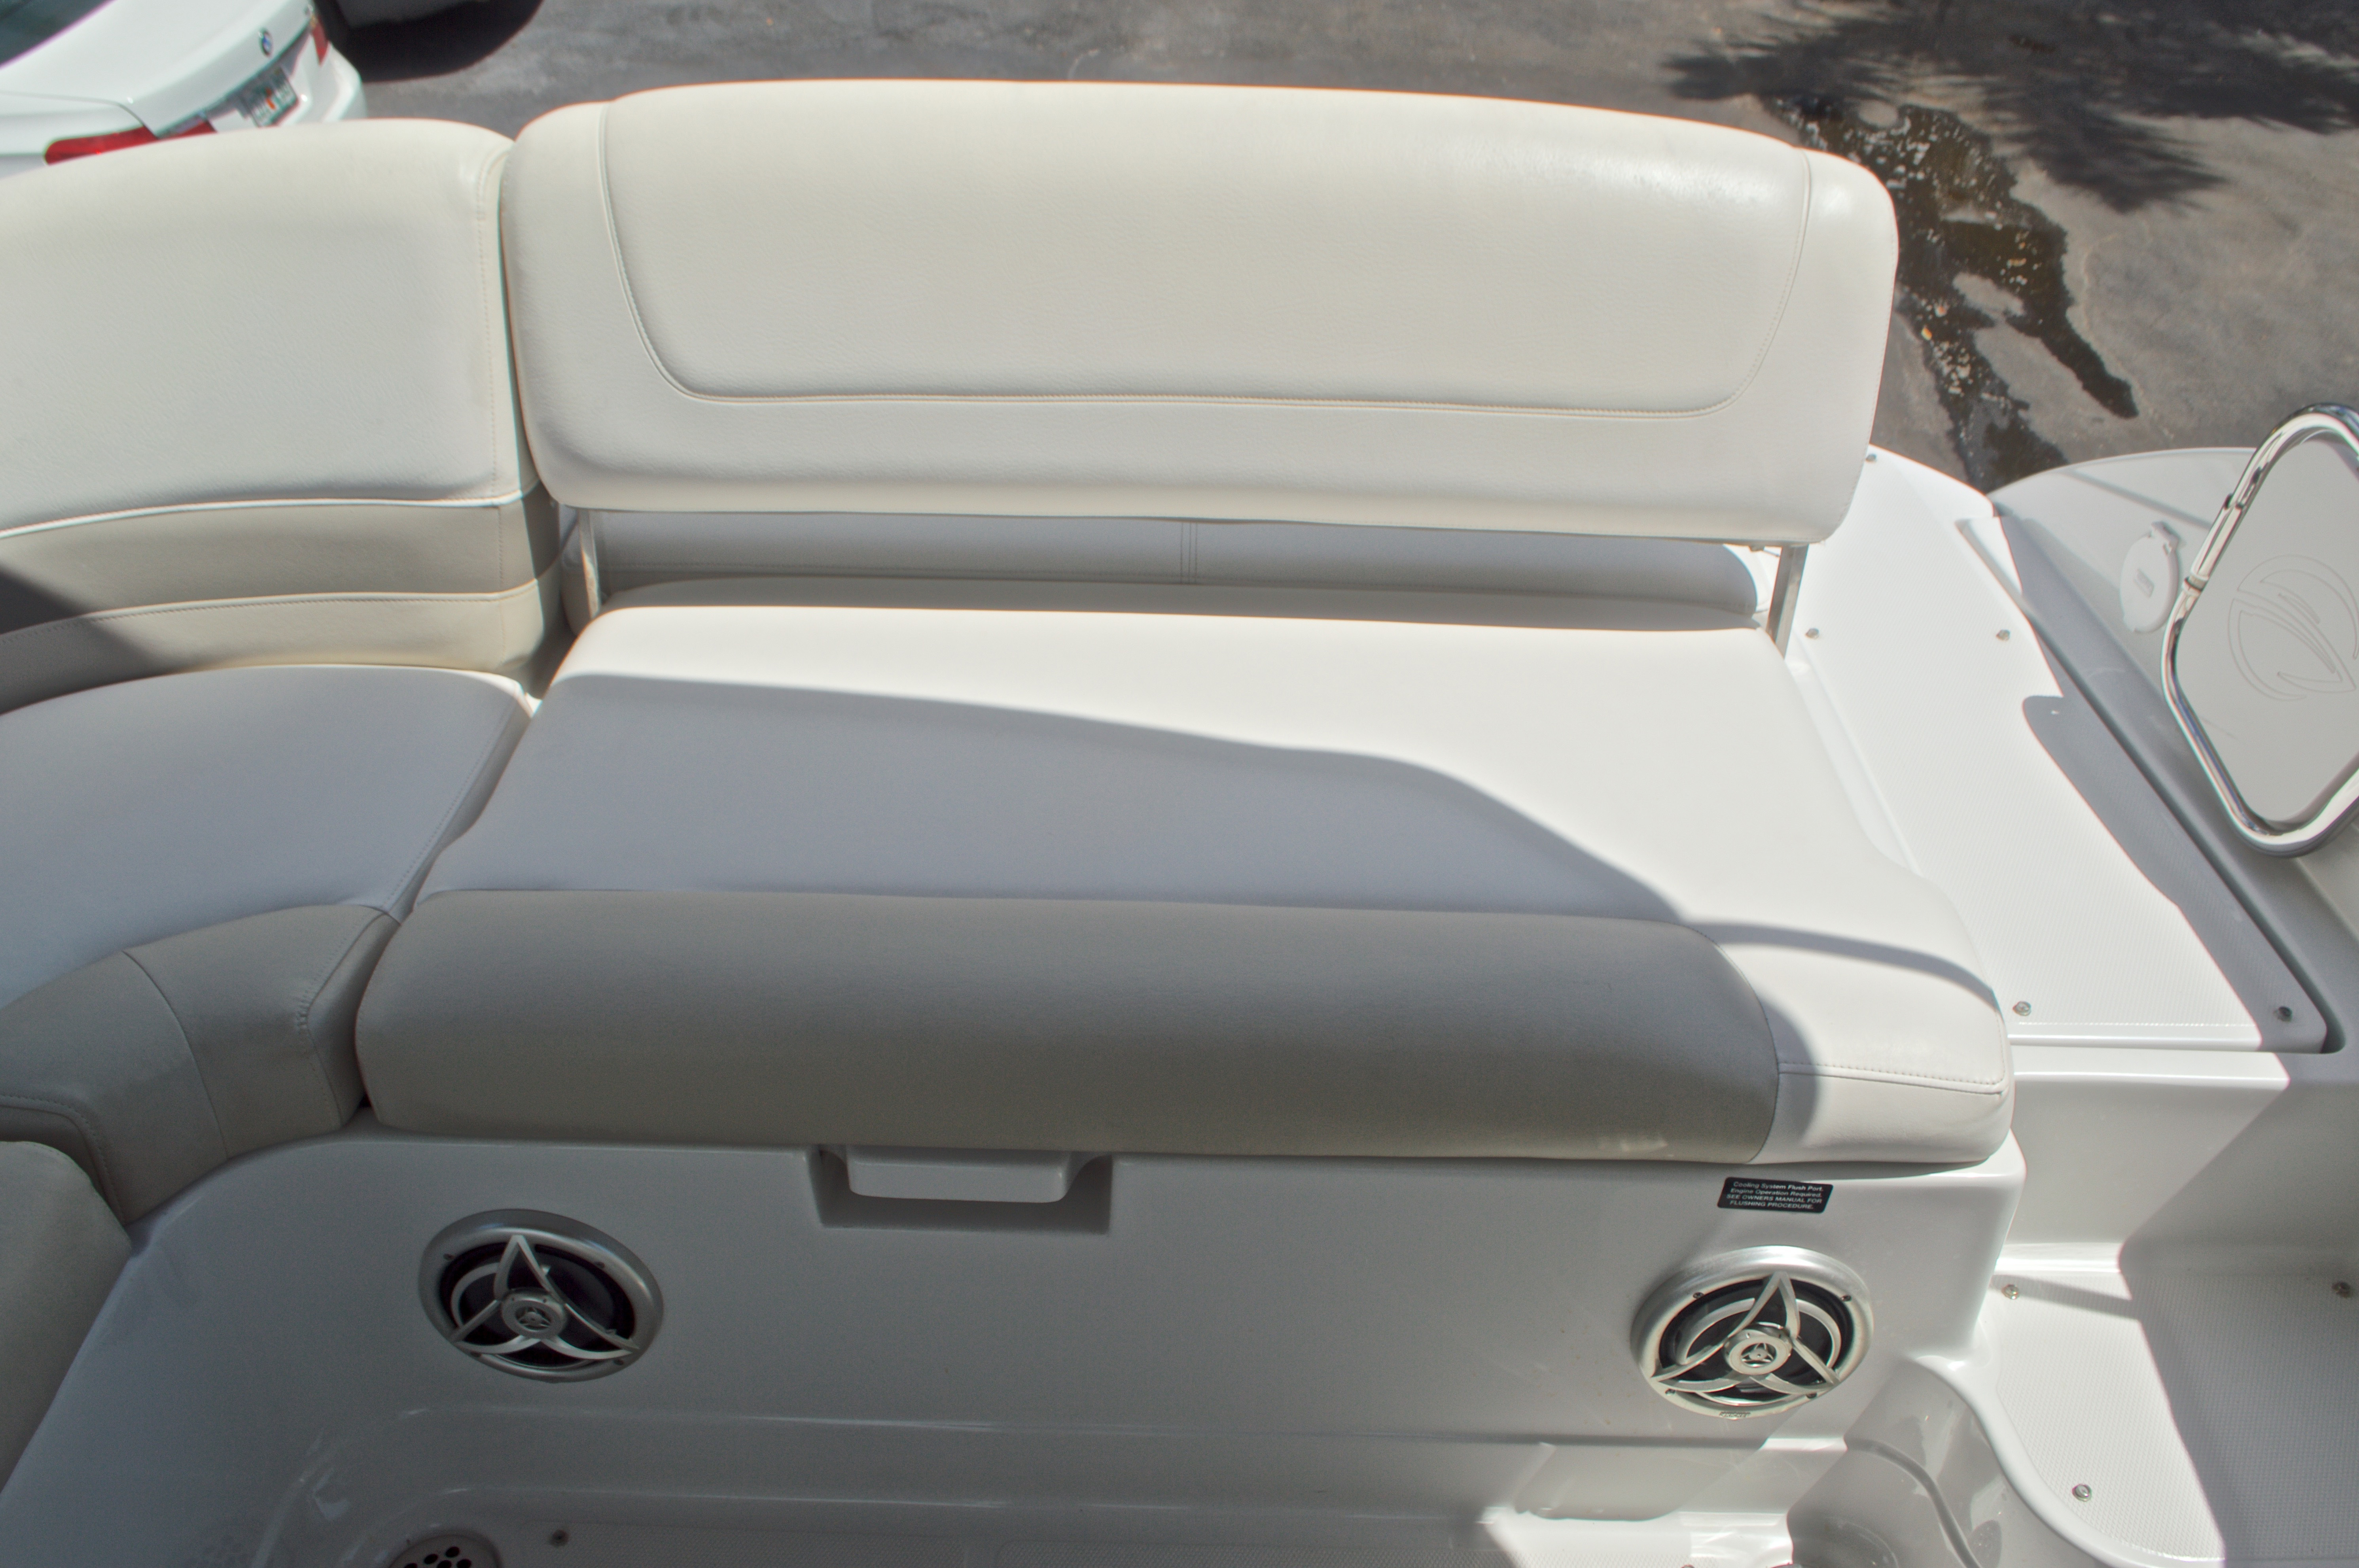 Thumbnail 20 for Used 2009 Crownline 300 LS boat for sale in West Palm Beach, FL